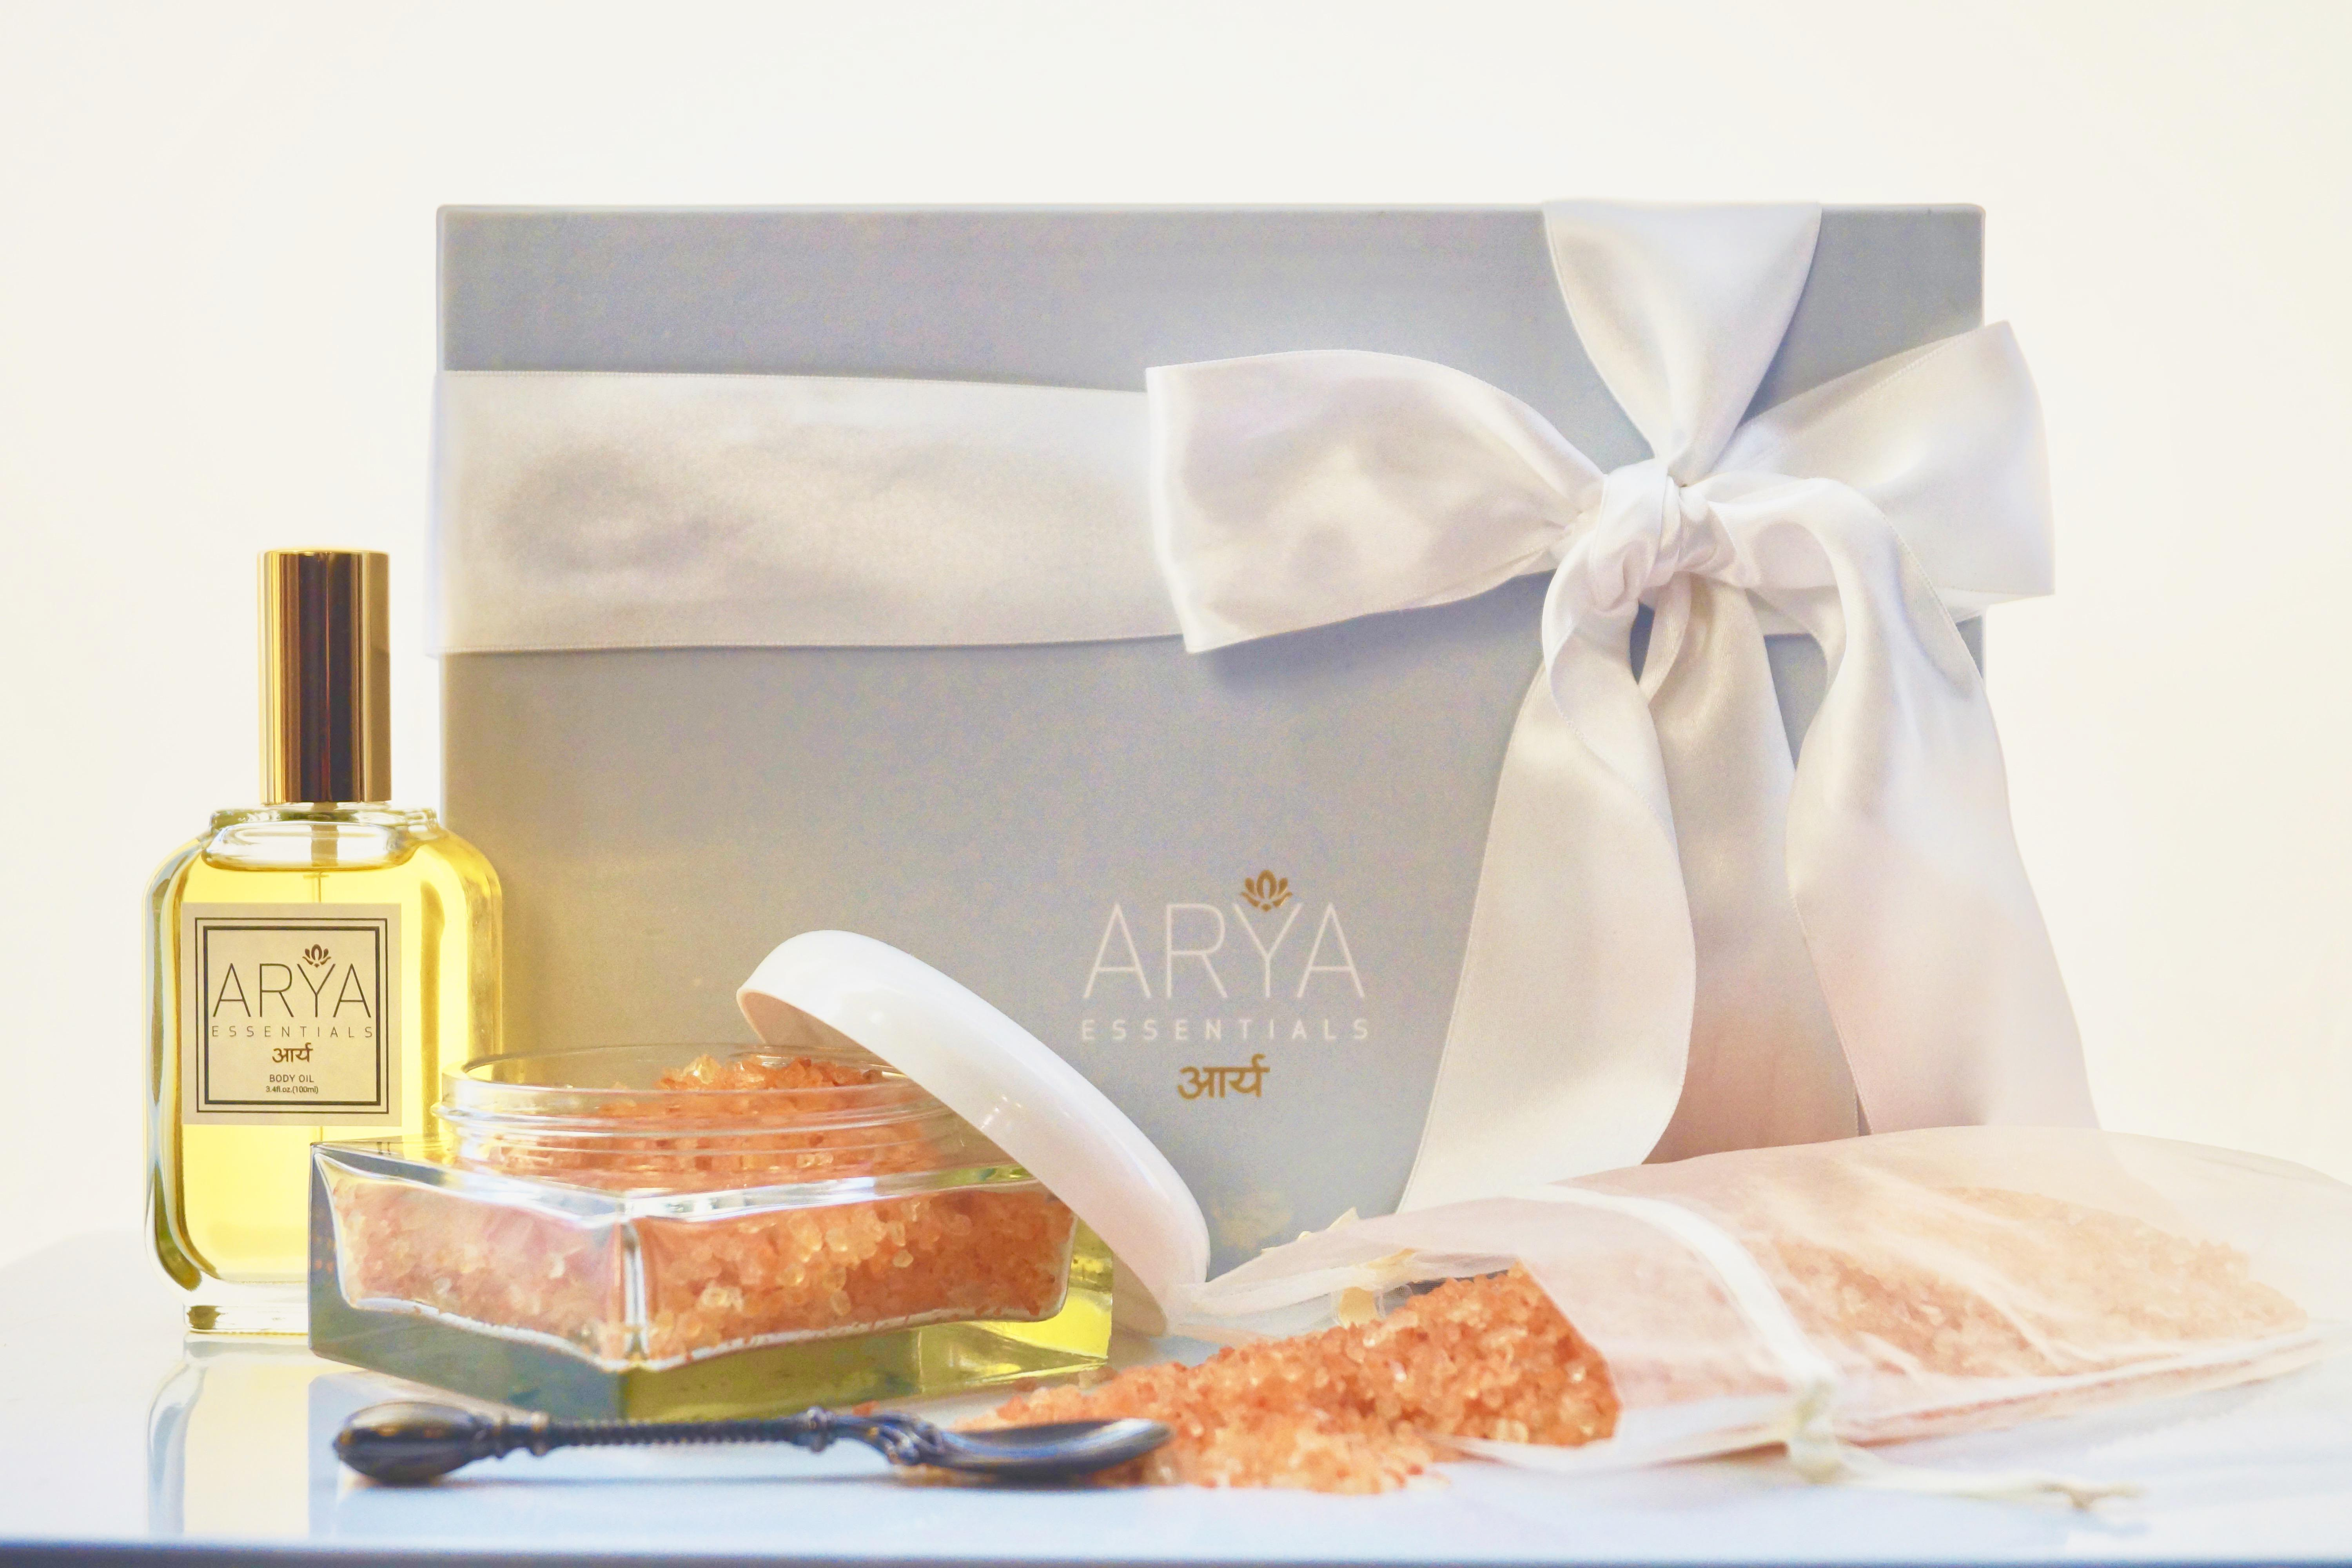 Gift Mom The Arya Essentials Treasured Body Experience This Holiday Season Photo